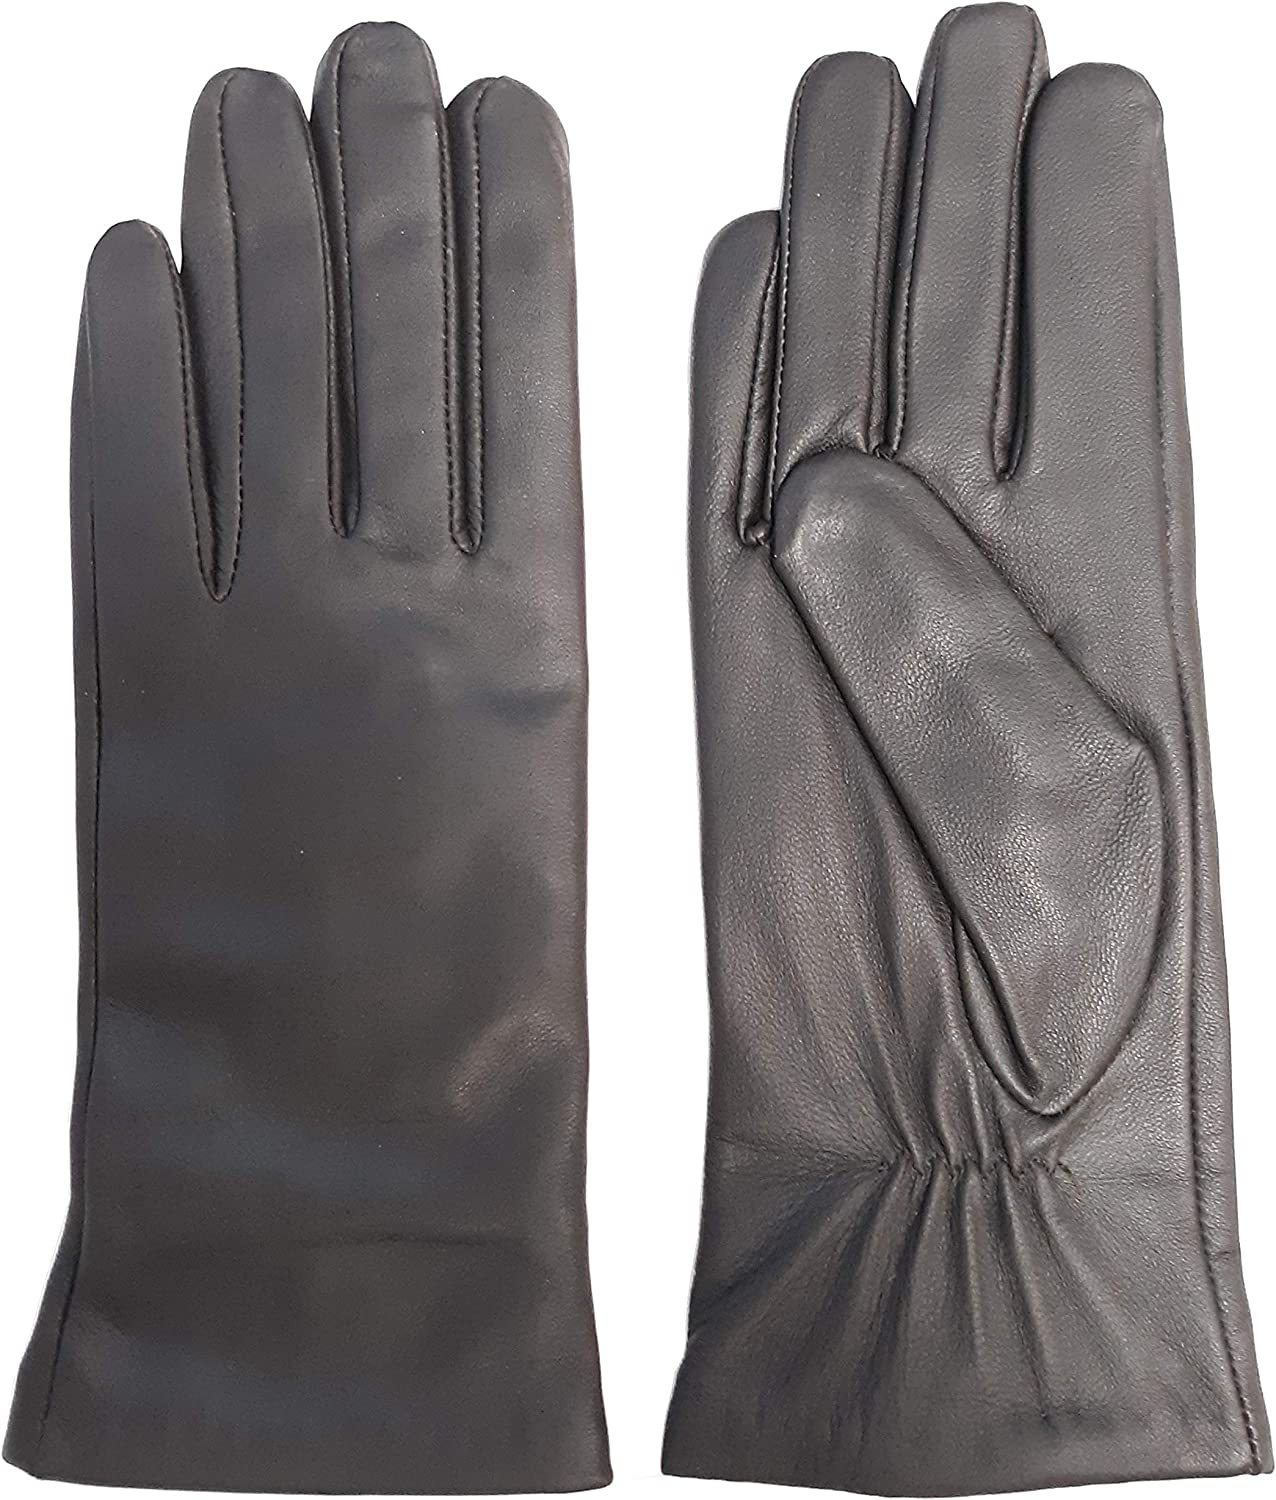 Imperial Soft Ladies Gloves, Dark Brown Cashmere-lined 100% Leather Gloves Small